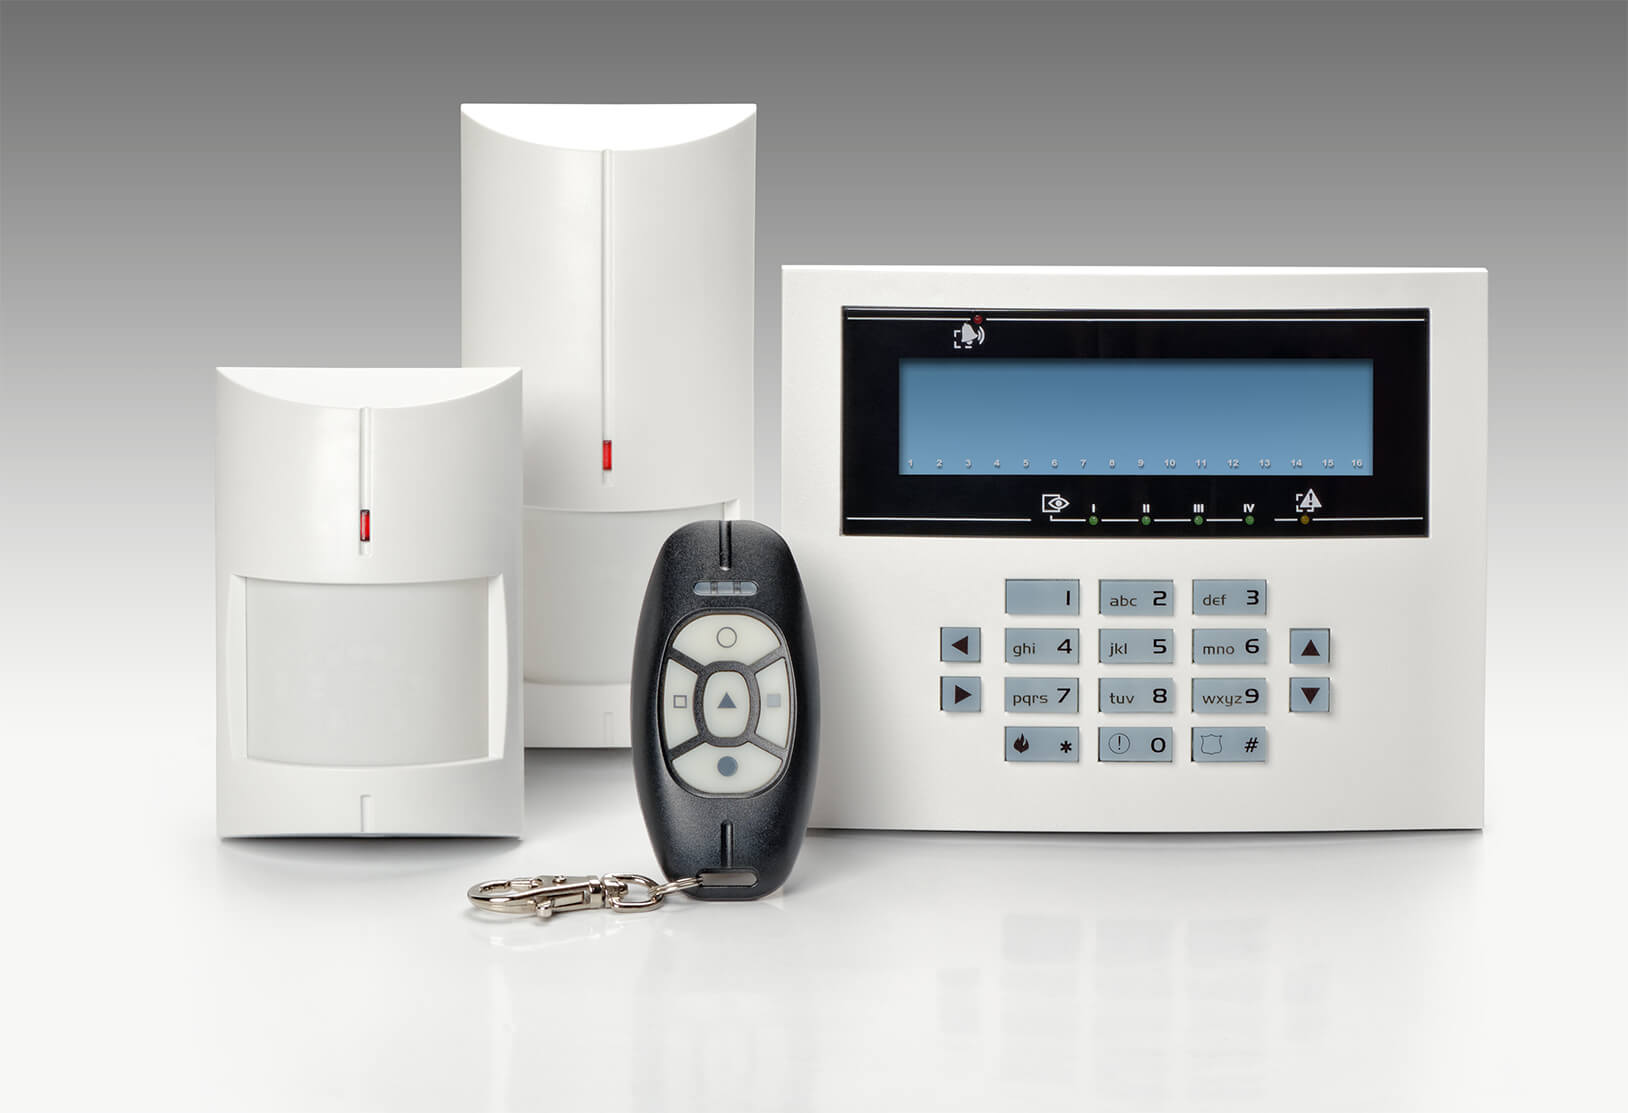 Burglar Alarms upgrade in Barkingside IG6 - Local Barkingside IG6 alarm engineers.Call 02078872244 - SEE PRICE of Burglar Alarms upgrade in Barkingside IG6 and book your alarm engineer. No Hidden charges,No Contracts, Book as you need.Engineers on demand.All alarm makes repaired.Same day service ability.